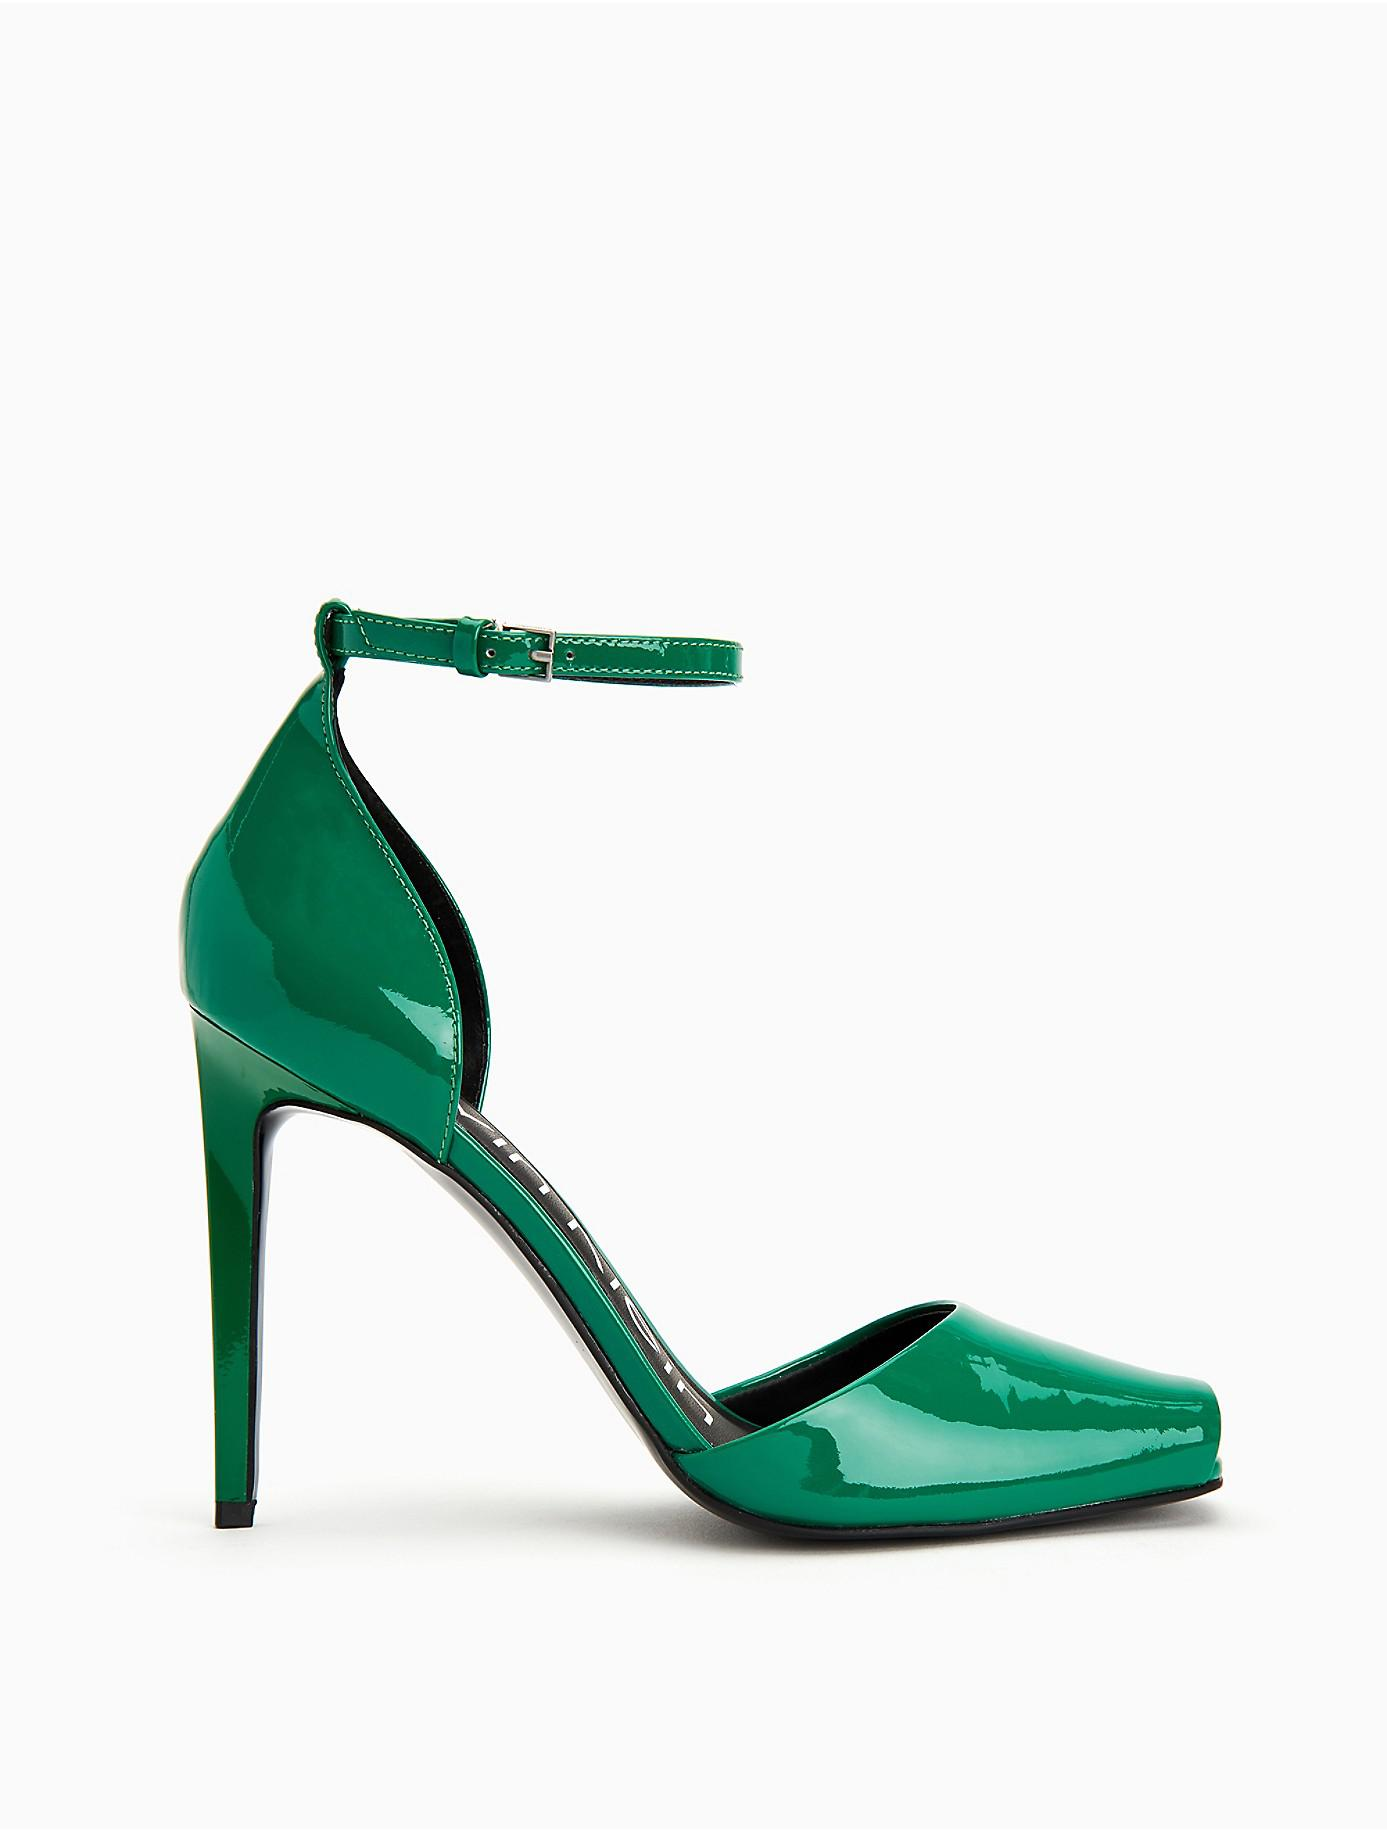 Daros Patent Leather Pump in Green